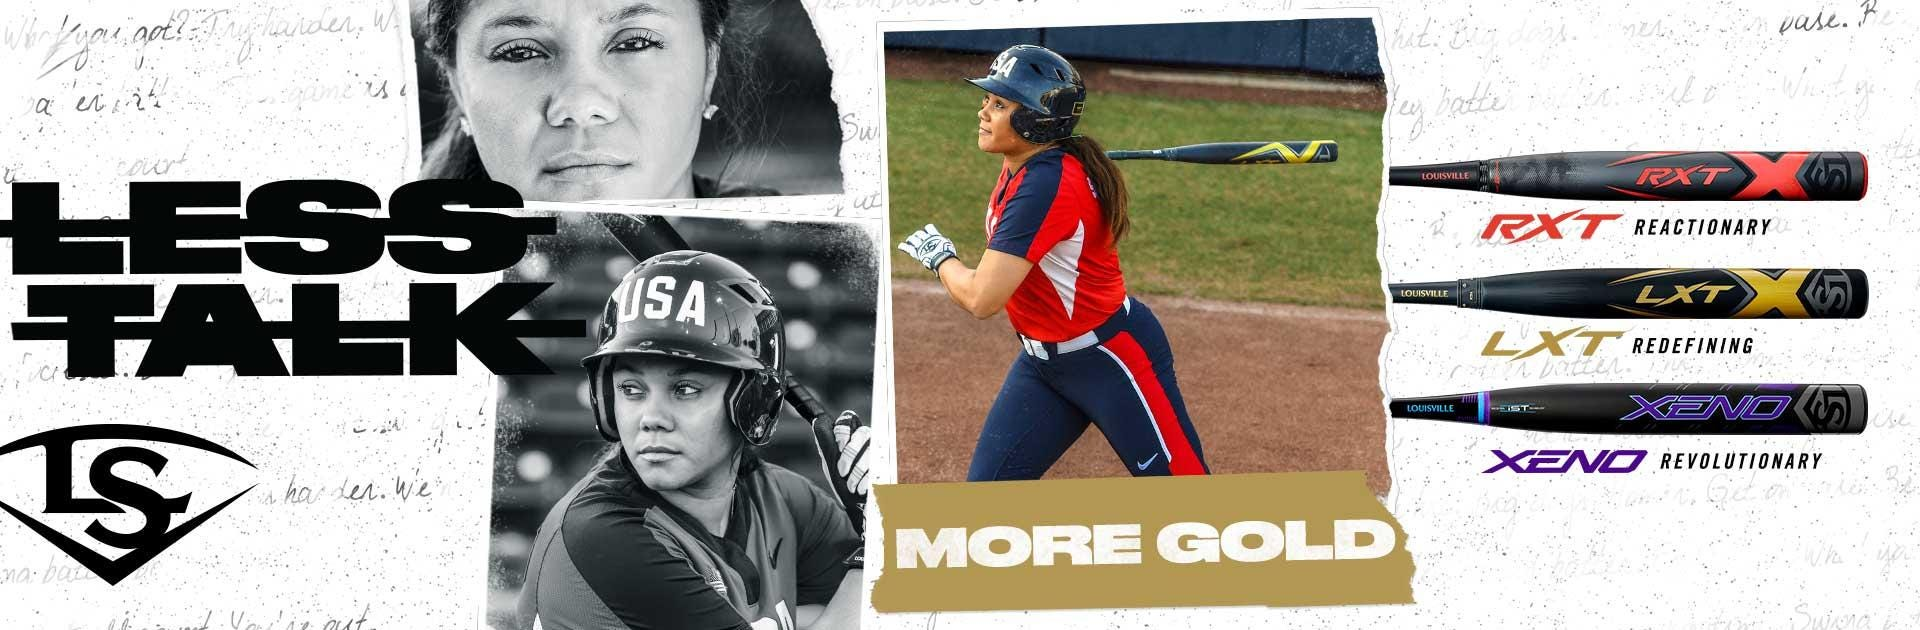 Louisville Slugger 2020 Fastpitch Softball Bats | Less Talk. More Gold.